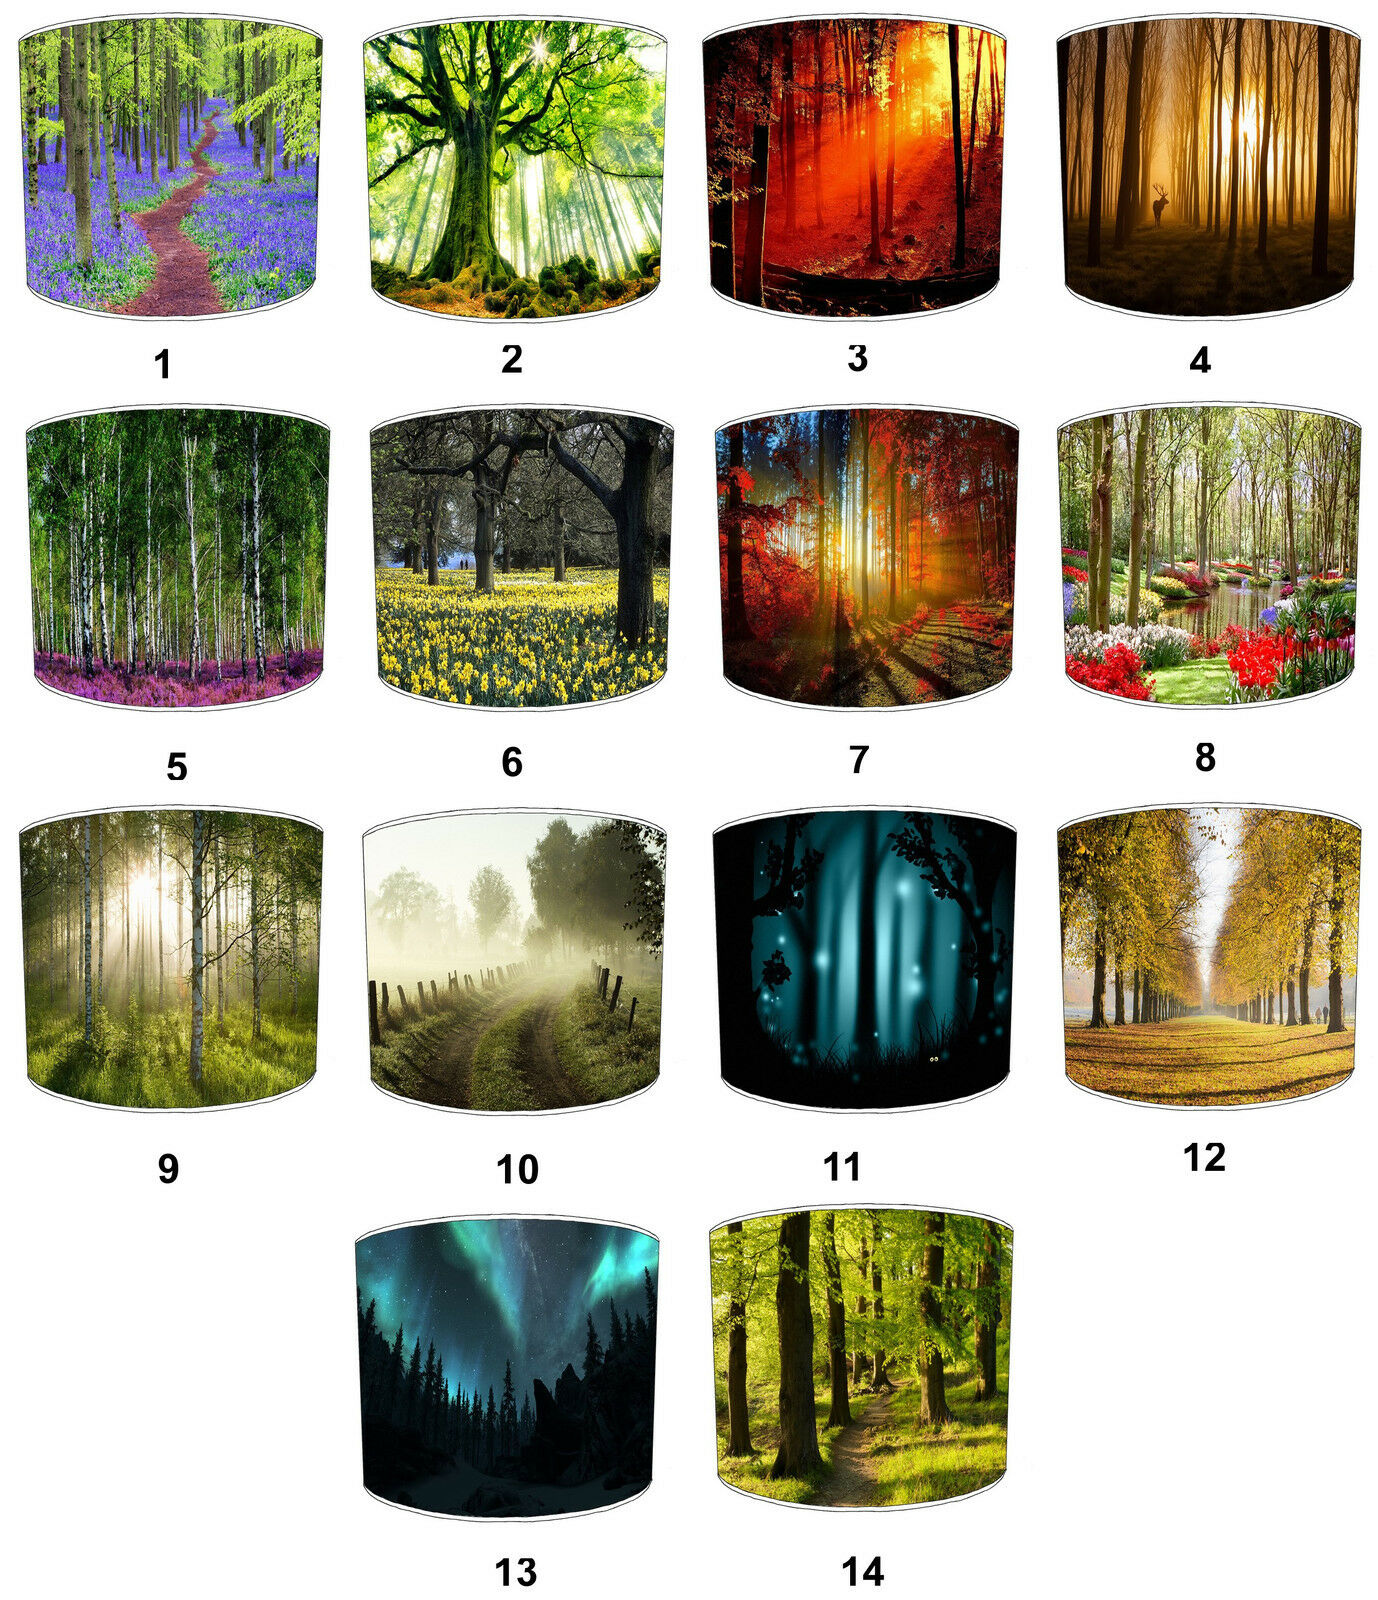 Countryside Lampshades, Ideal To Match Countryside Bedding Sets & Duvet Covers.